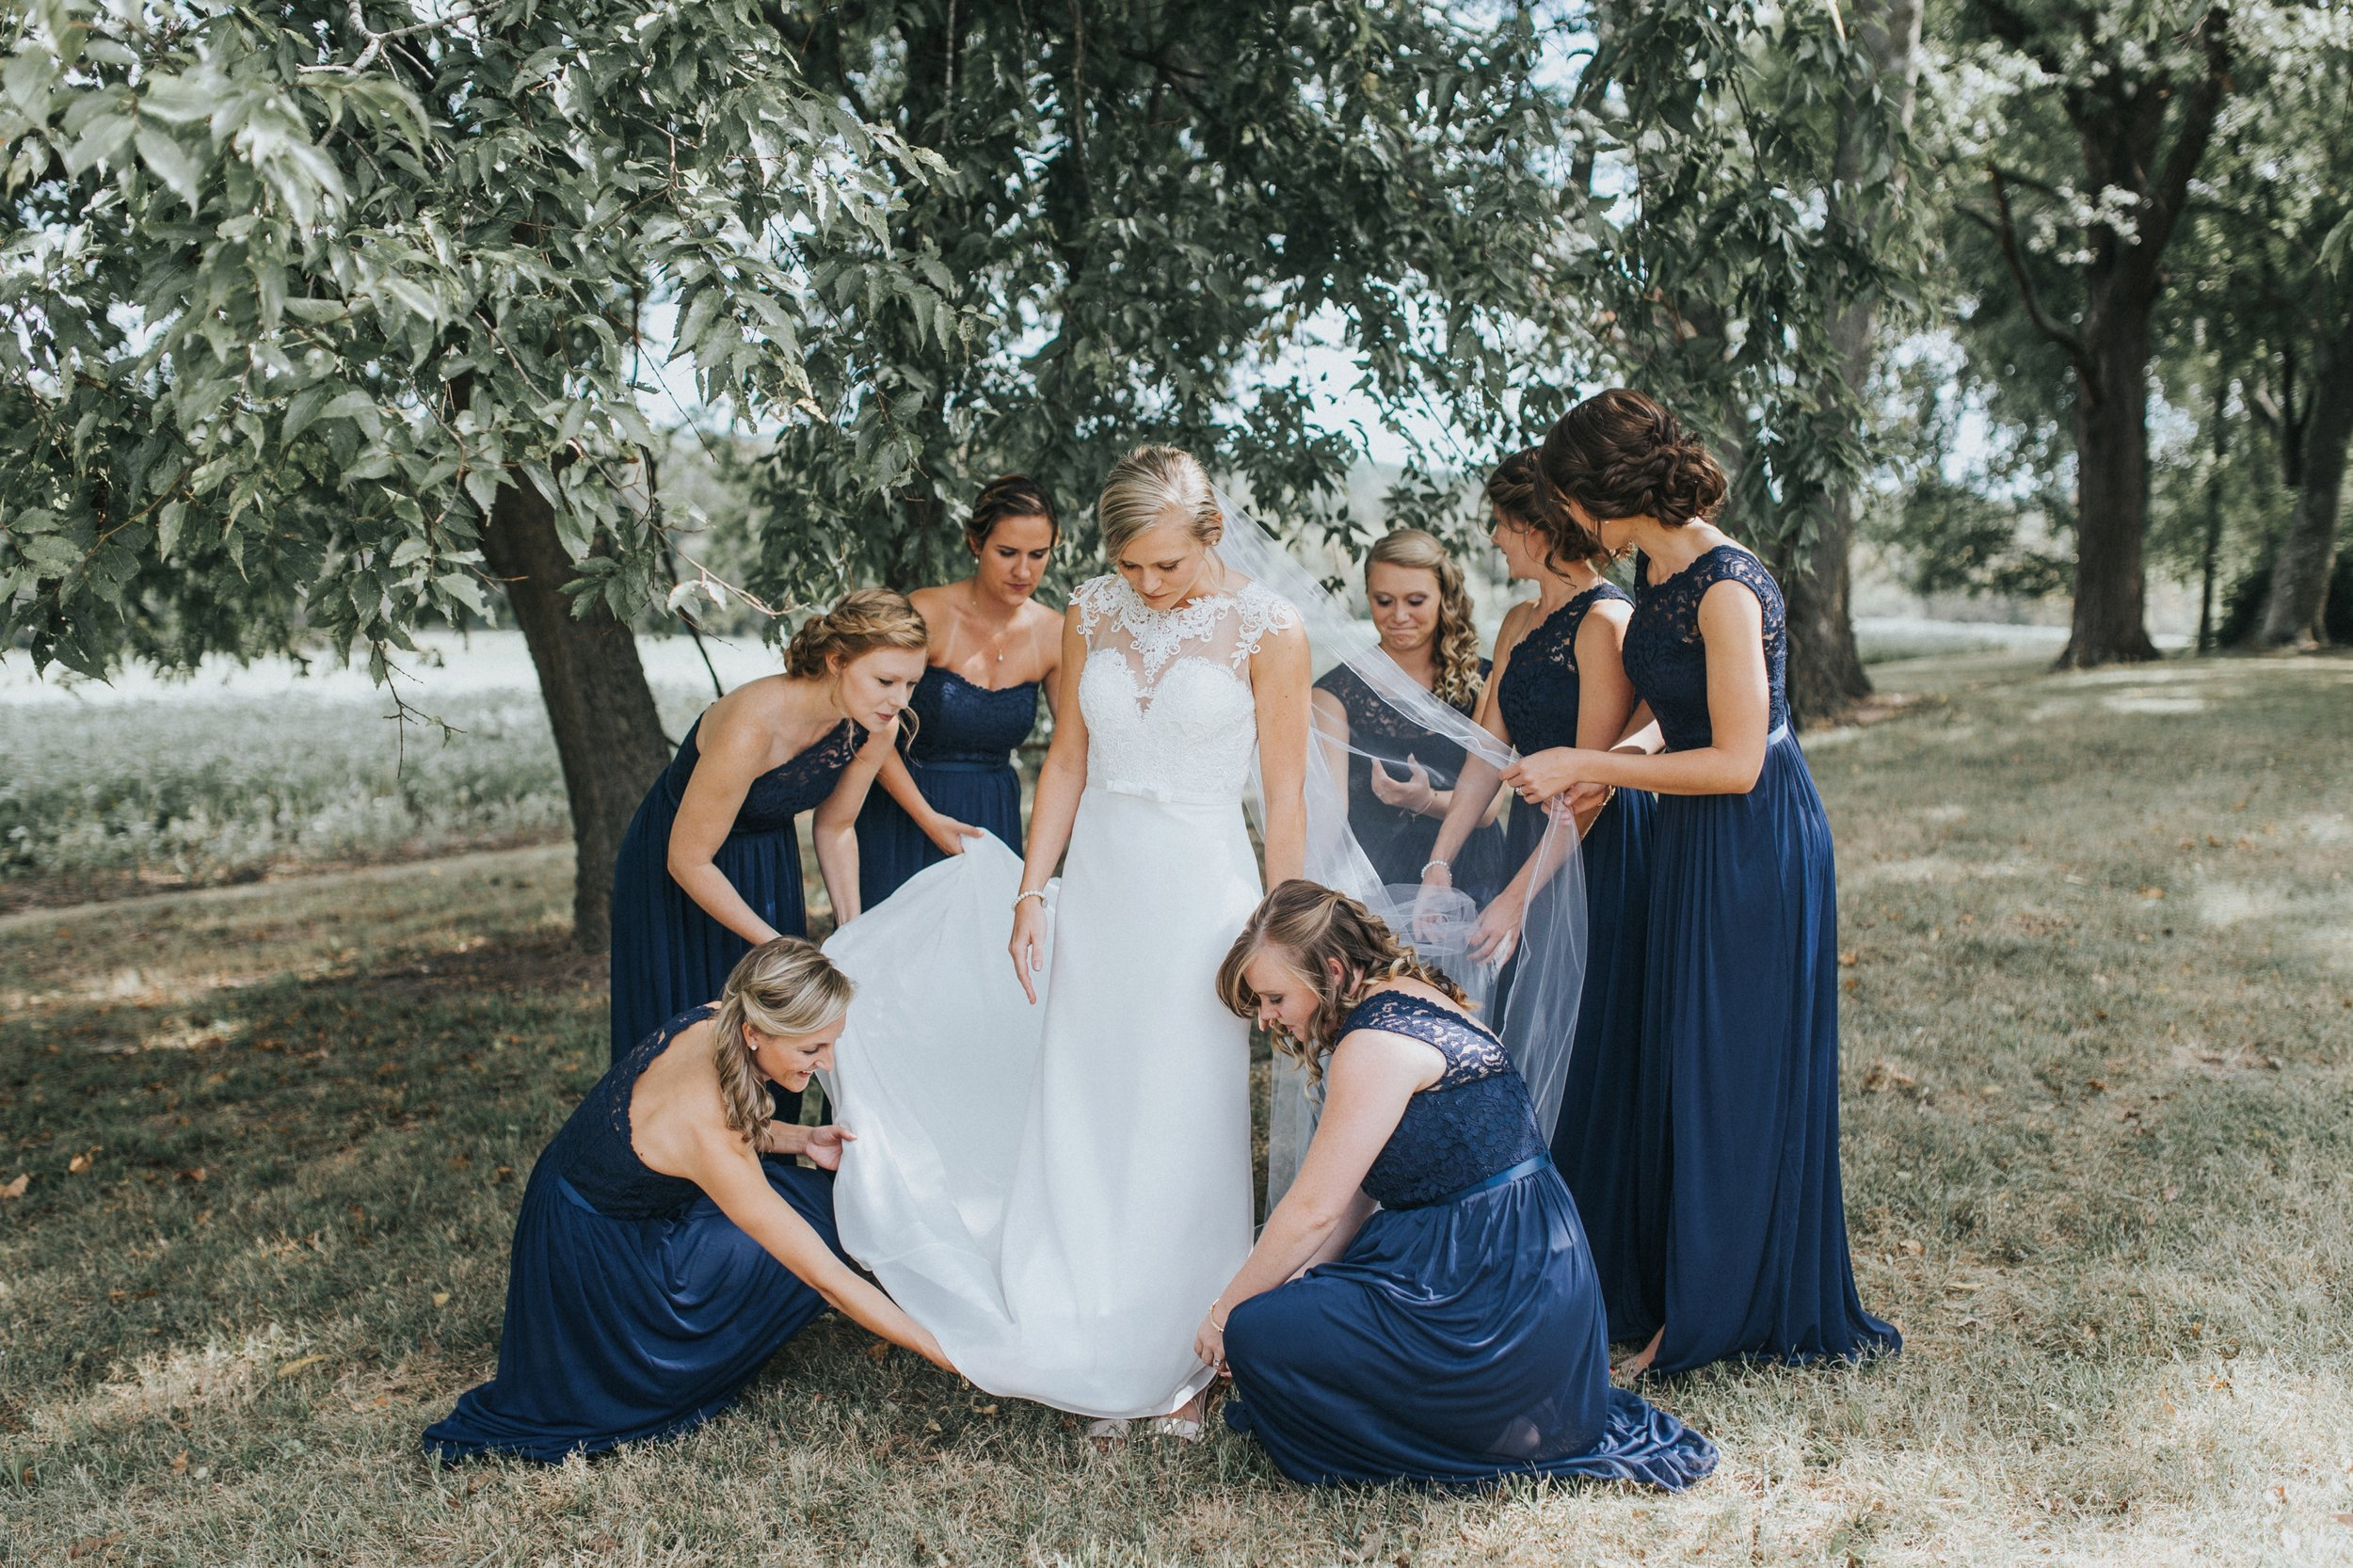 Virginia wedding photographer, Charlottesville wedding photographer, the hunt at Selma wedding, amelia virginia wedding photographer_0153.jpg